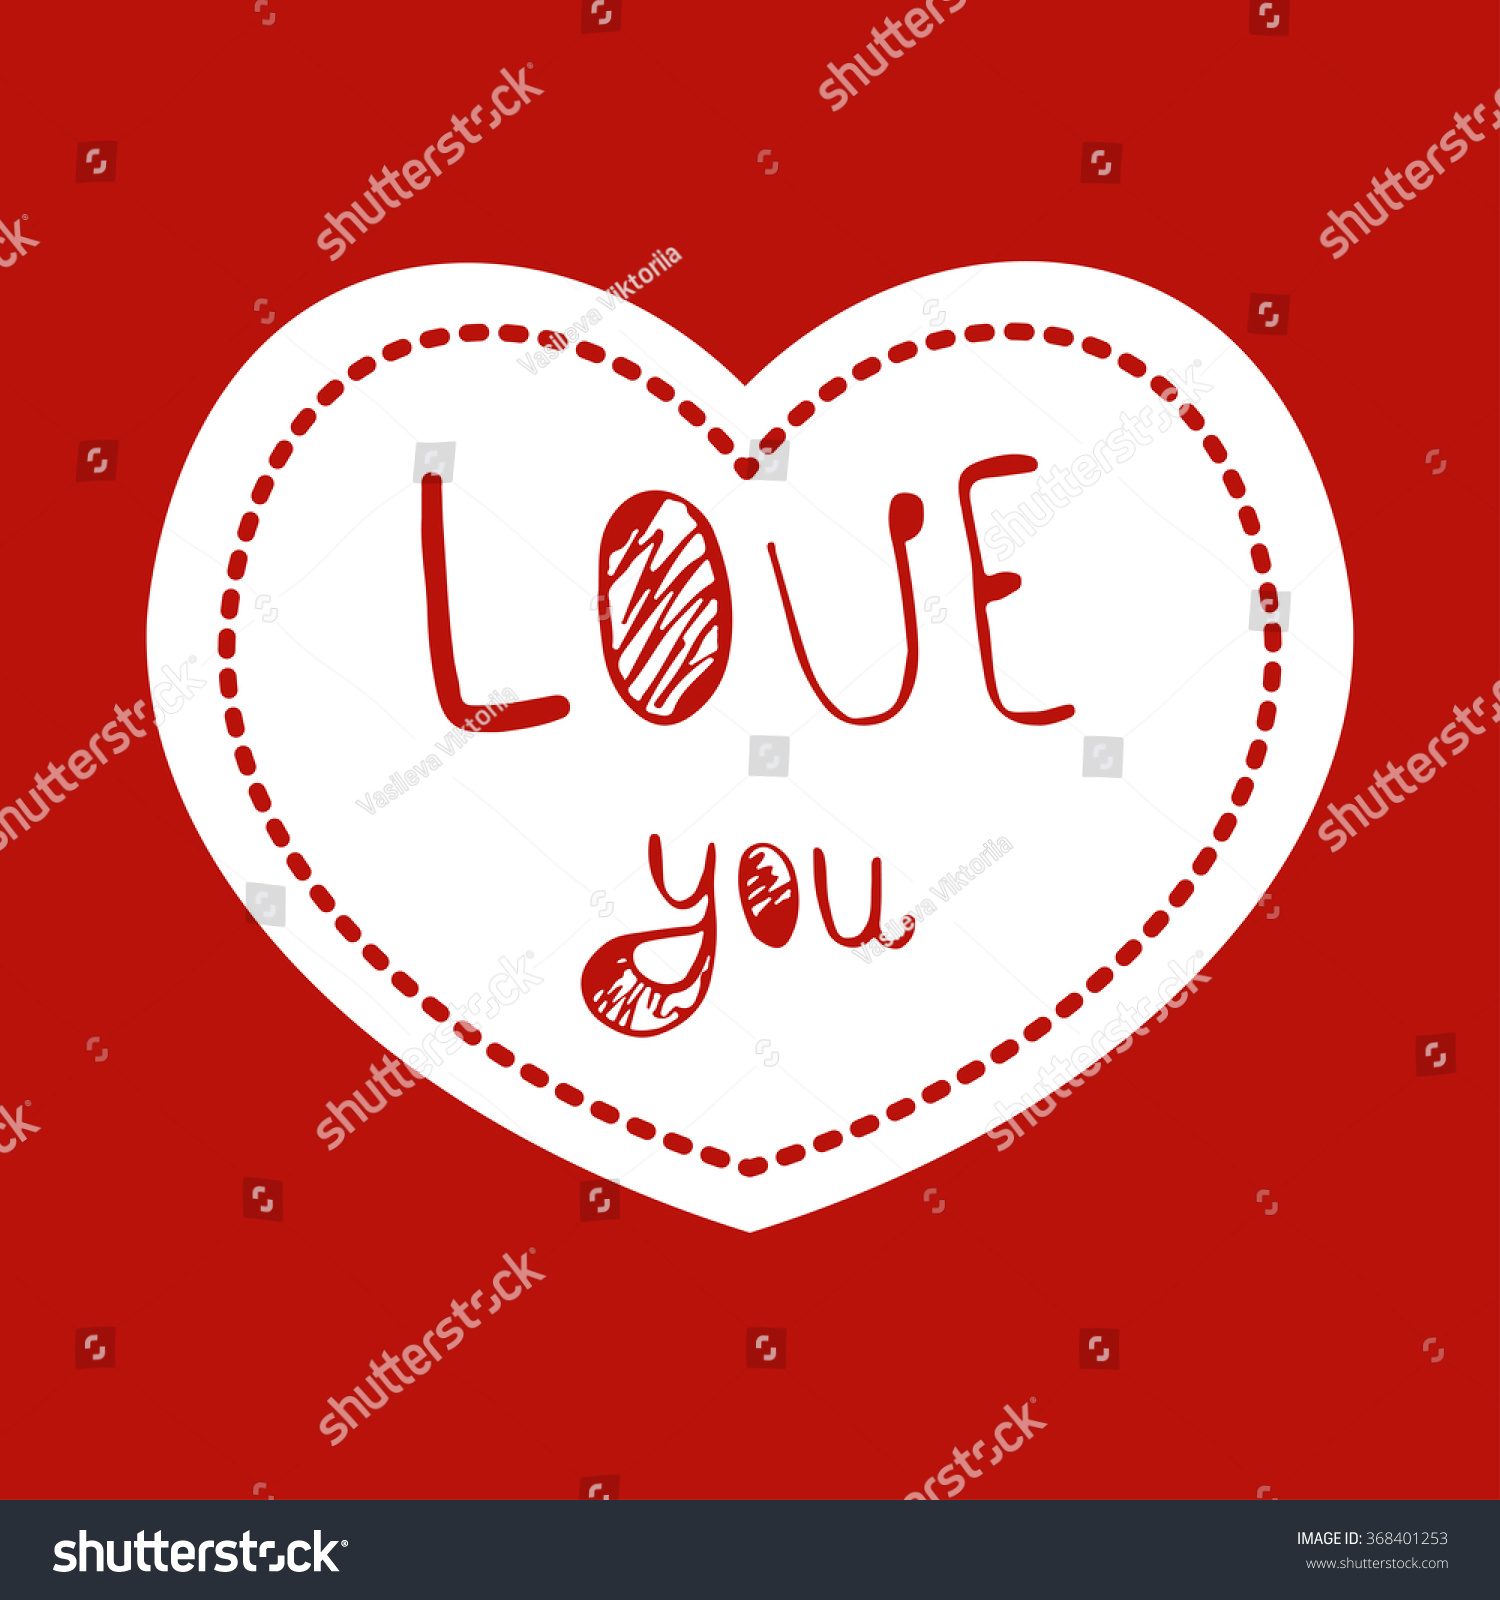 Love Youvalentines Day Greeting Cards Vector Stock Vector 368401253